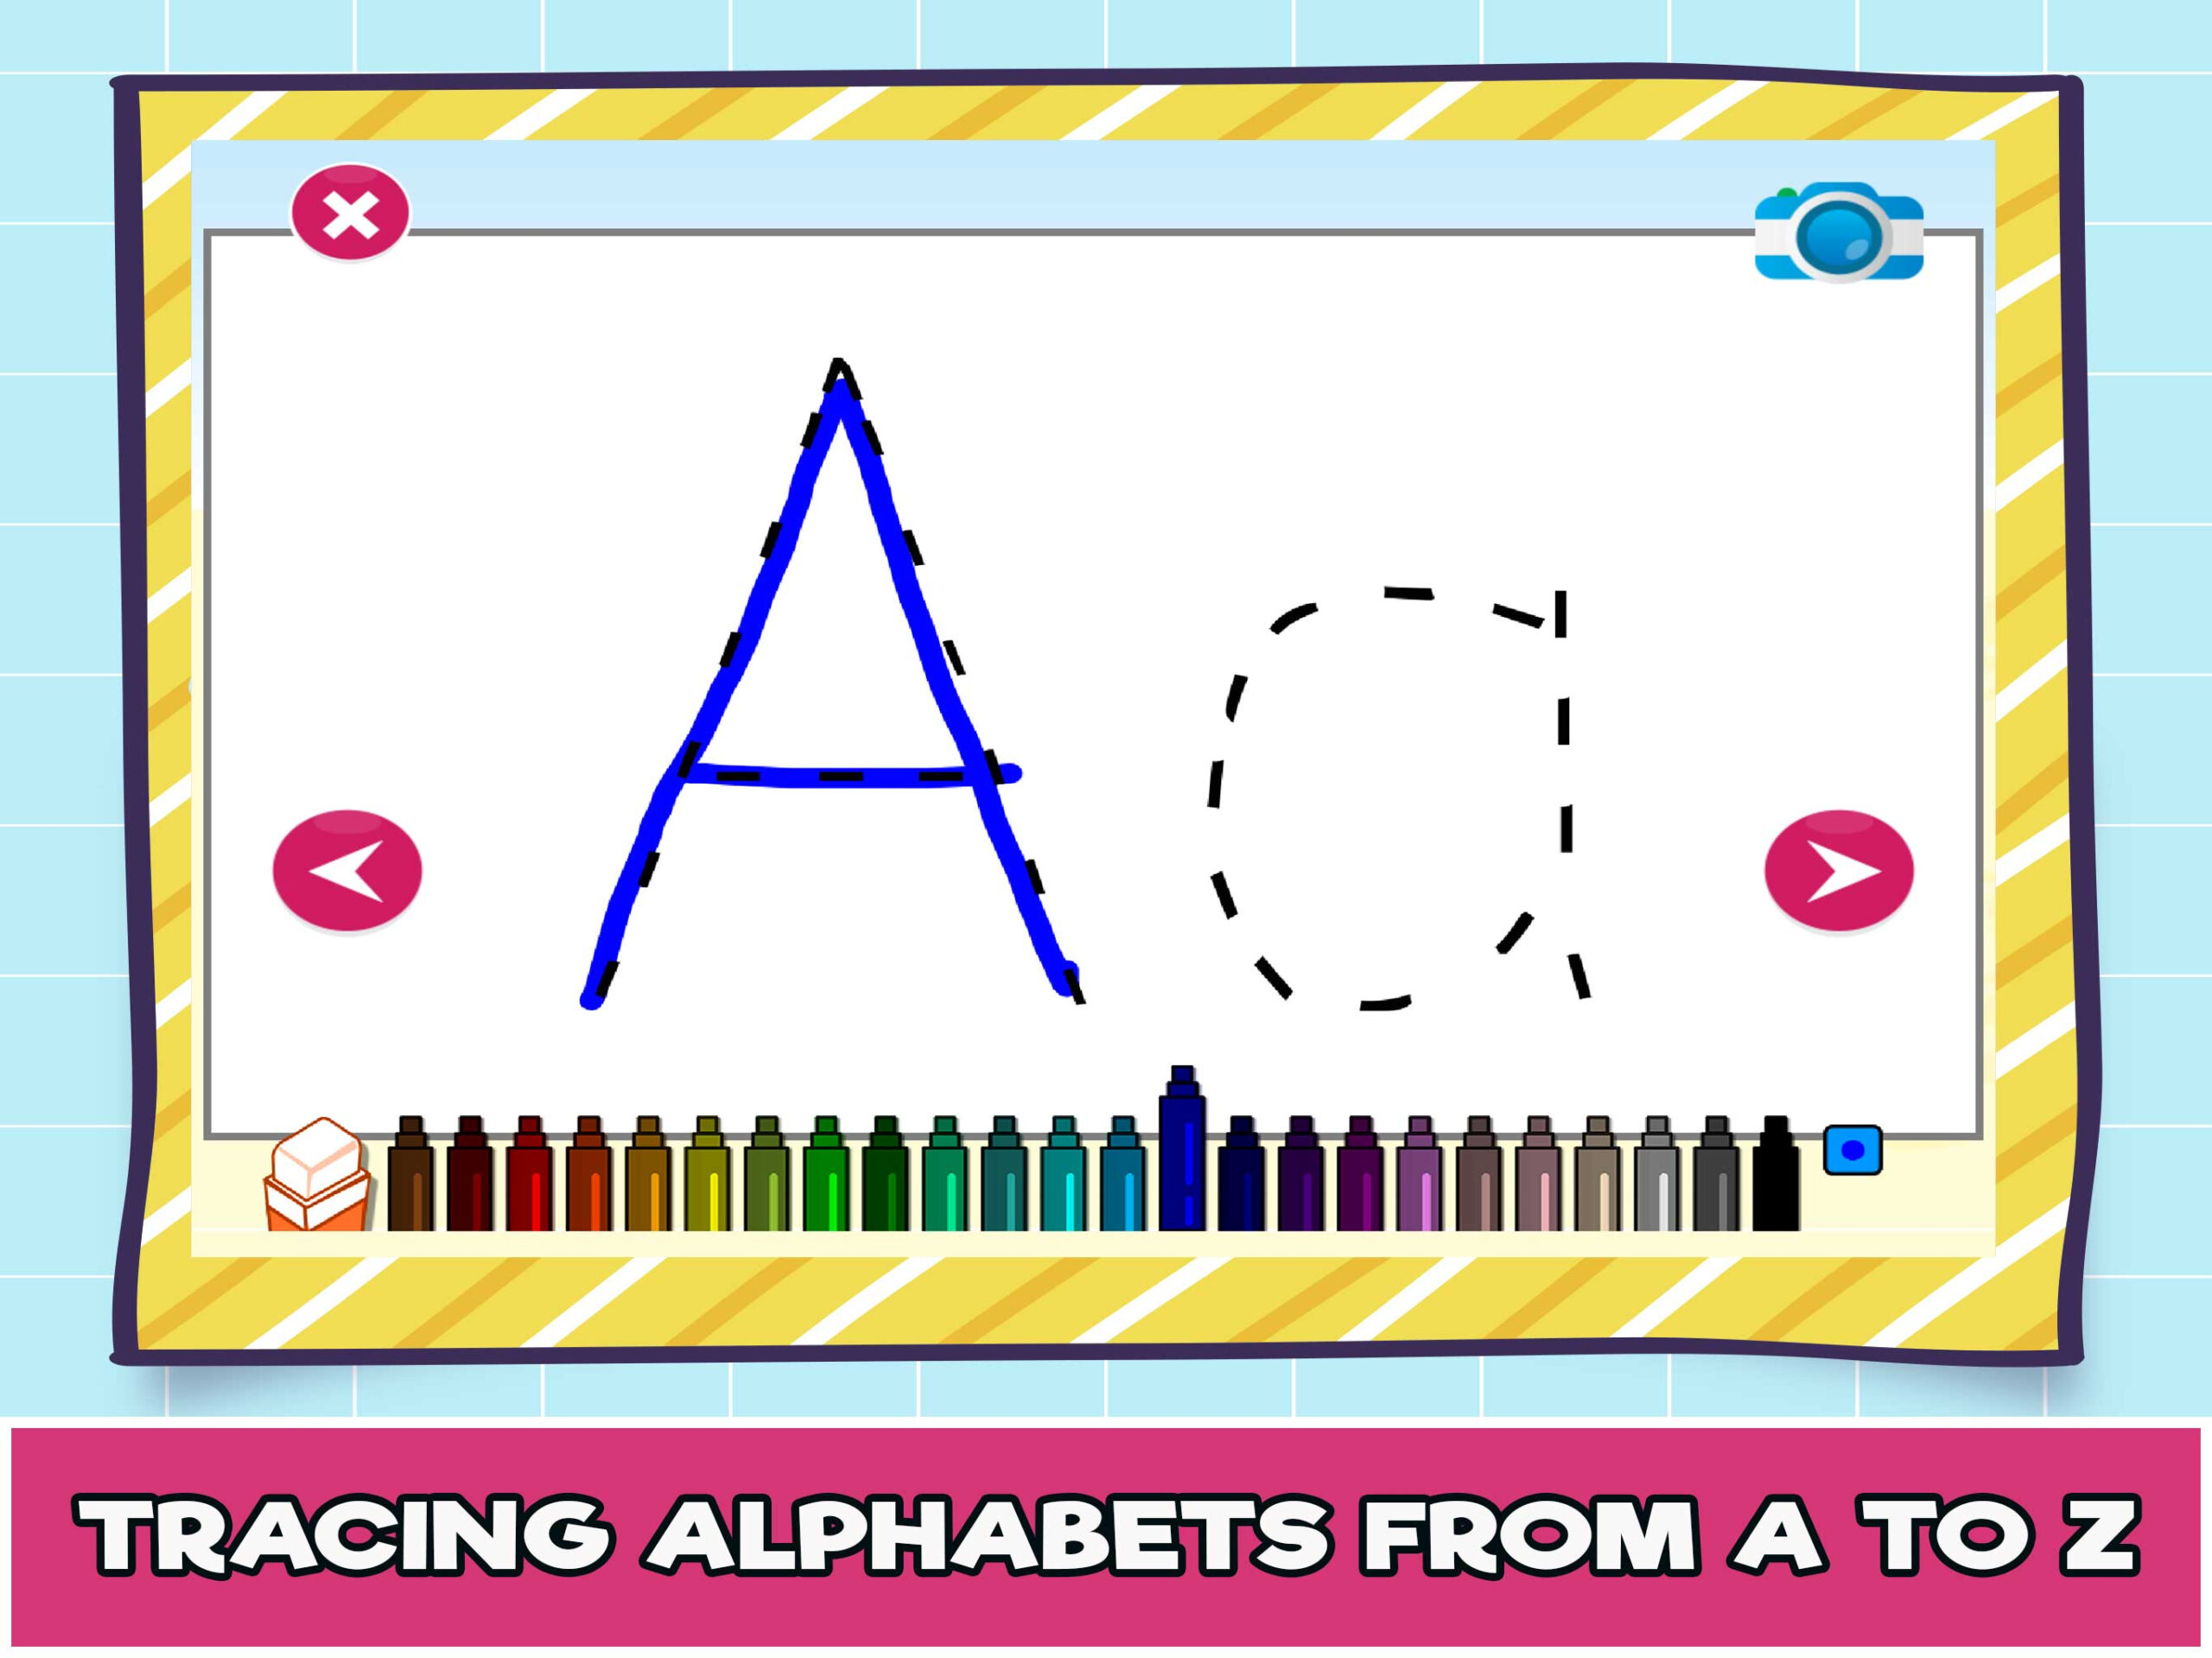 Free Online Alphabet Tracing Game For Kids - The Learning Apps inside Alphabet Tracing Online